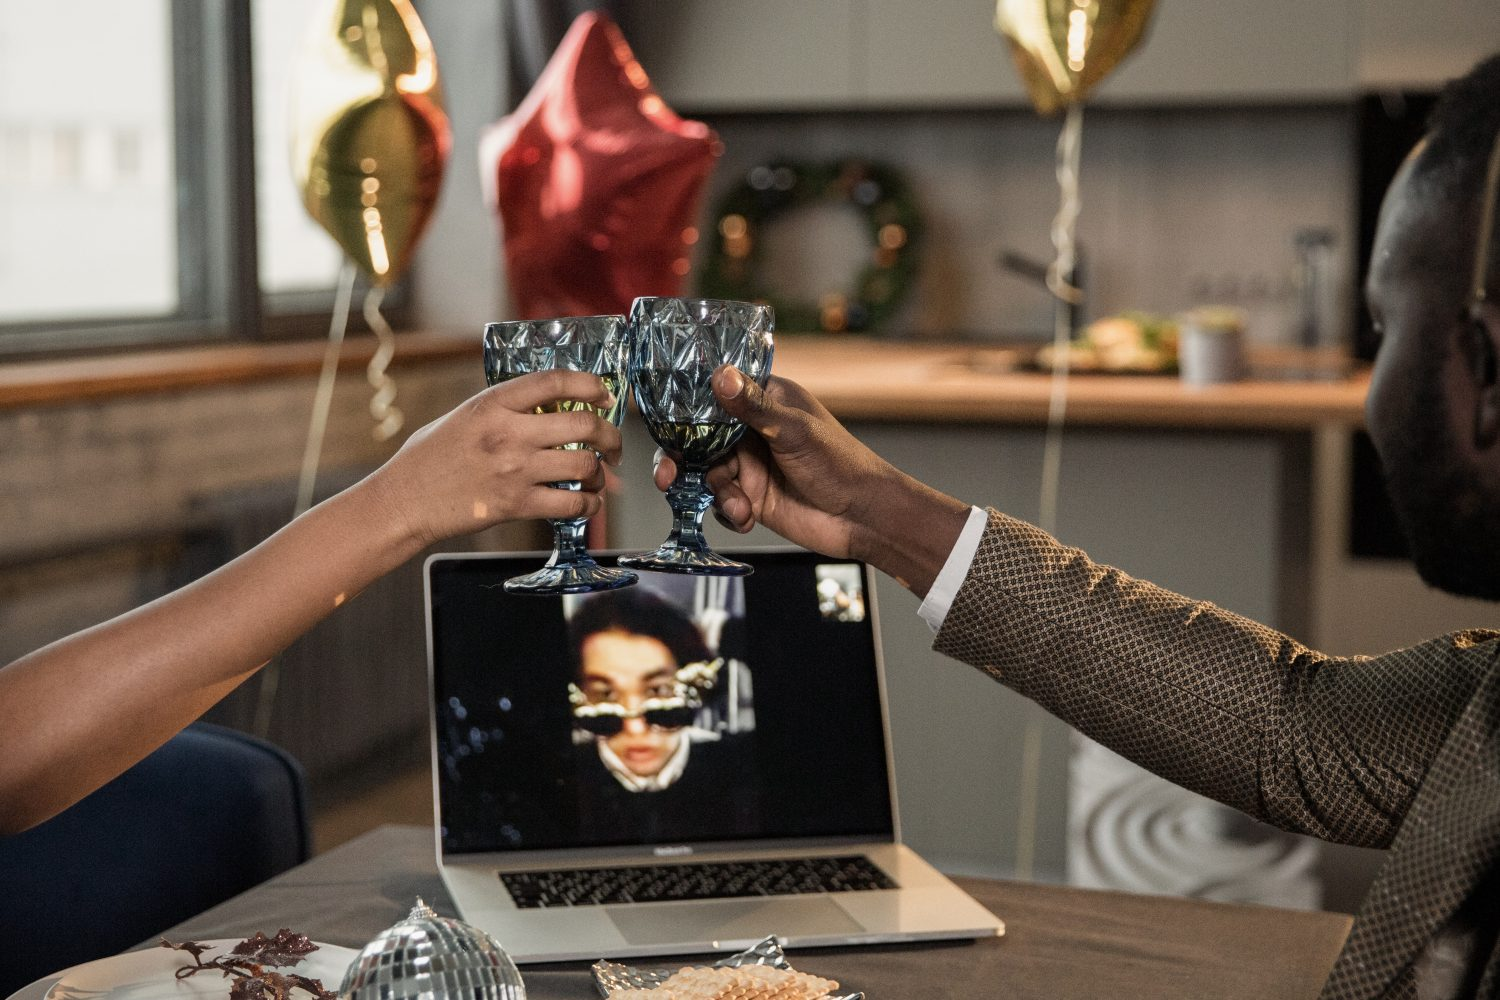 People toasting with cups in front of a computer screen